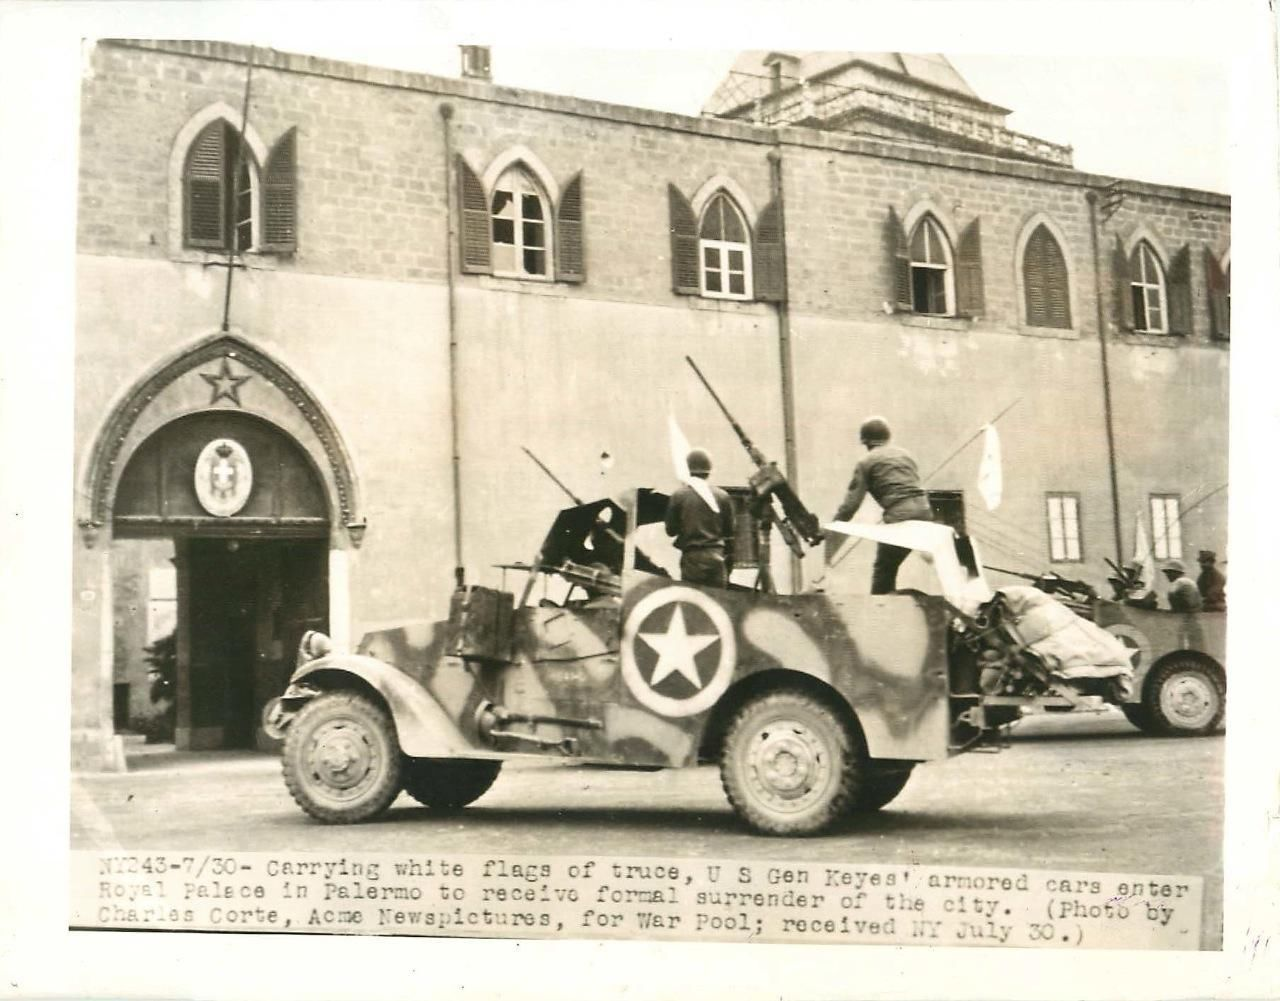 7-30-43 Scout Car Sicily.JPG